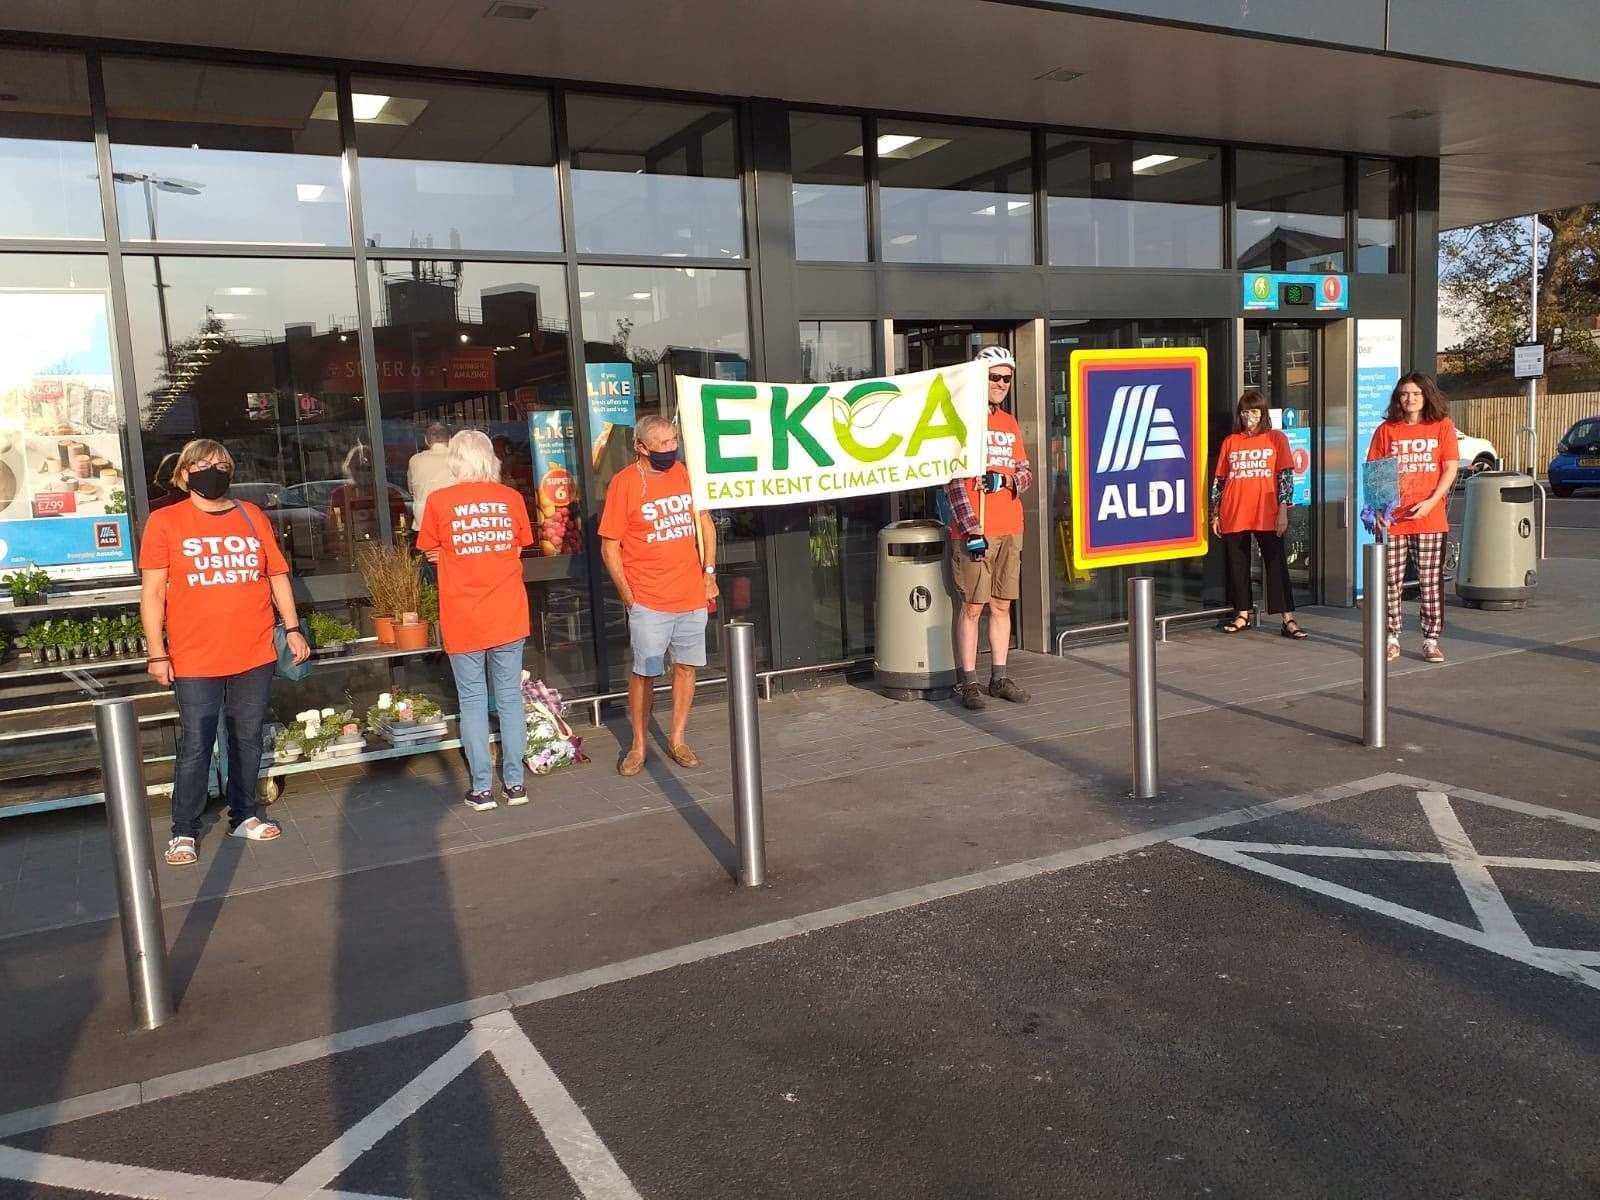 The group protested outside Aldi in West Street Picture: Helen O'Brien